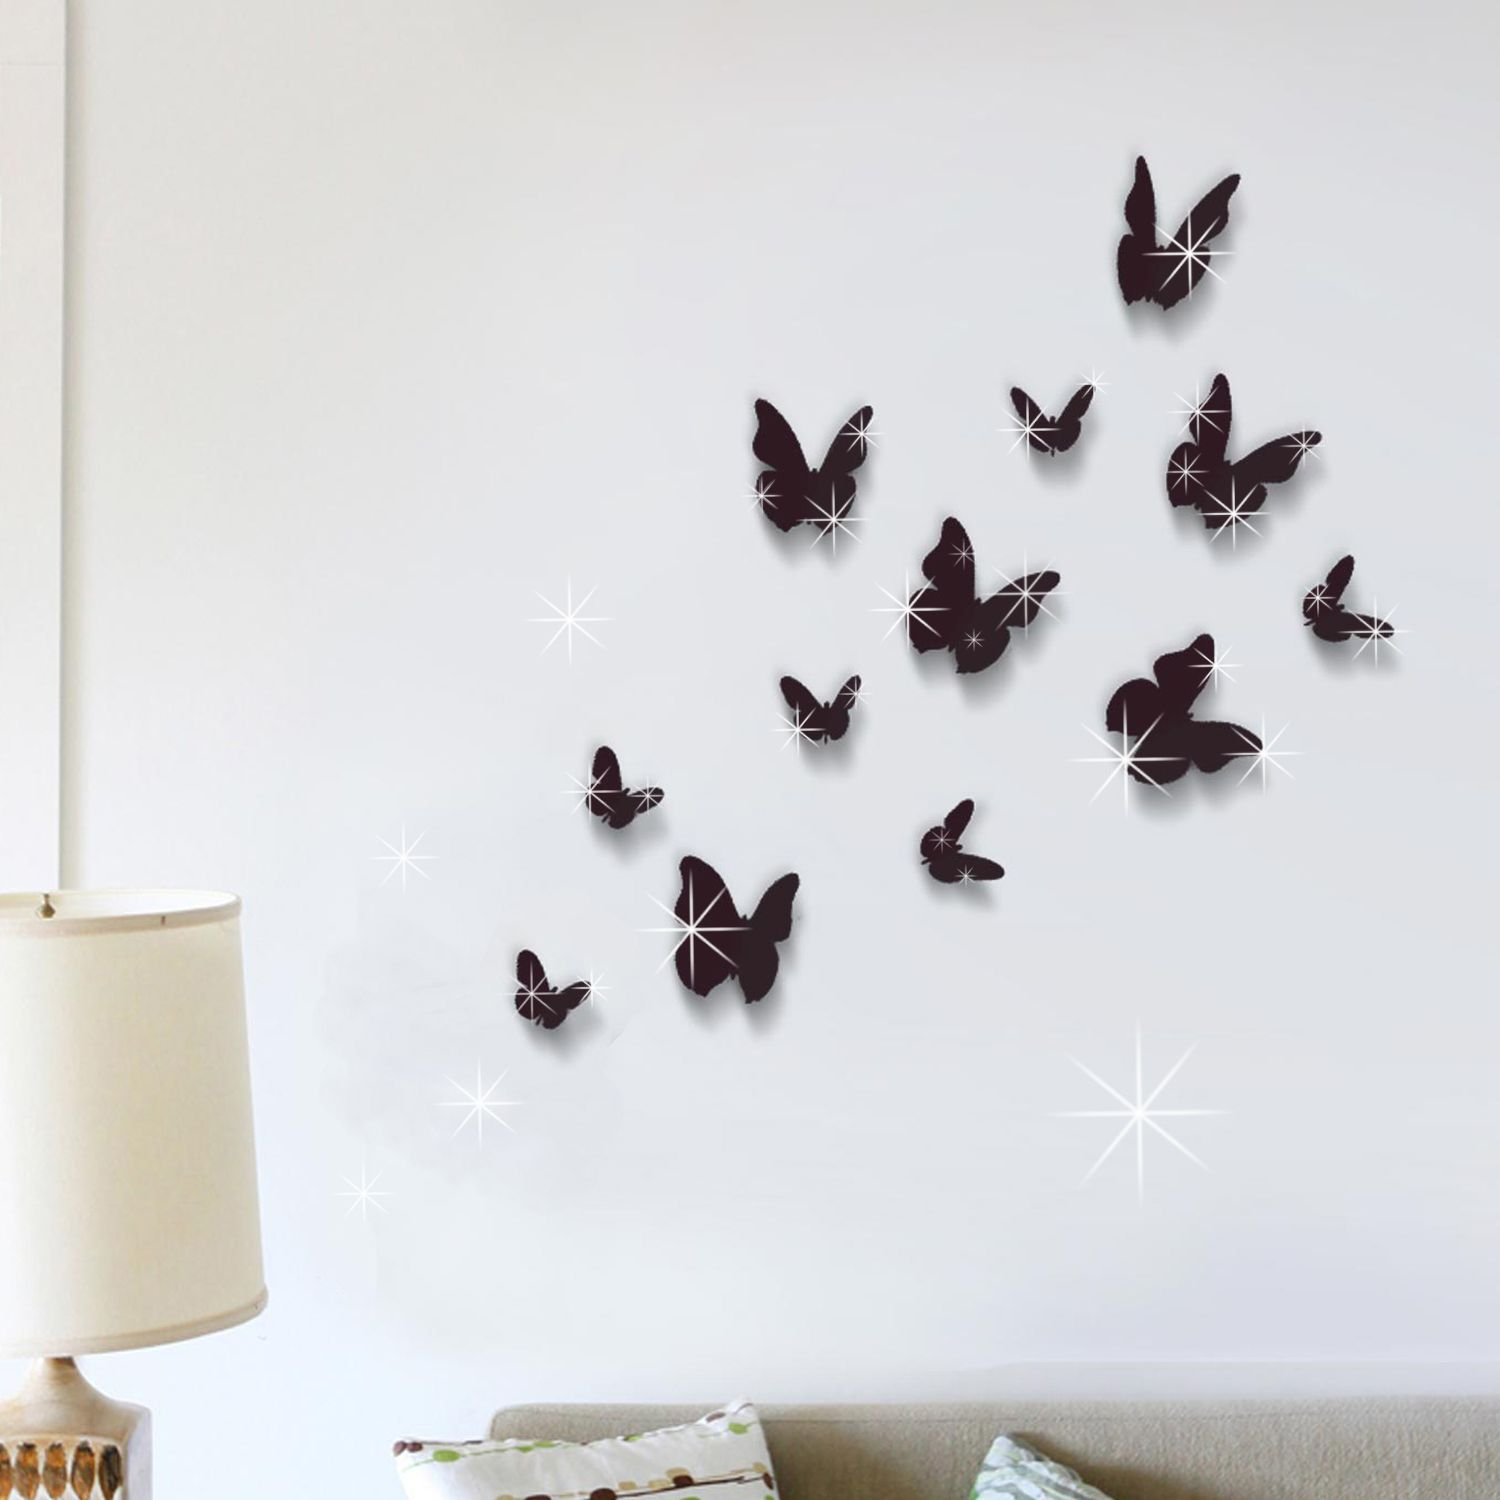 3D Butterfly Black and Swarovski 2.9mm Clear Crystals Wall Sticker